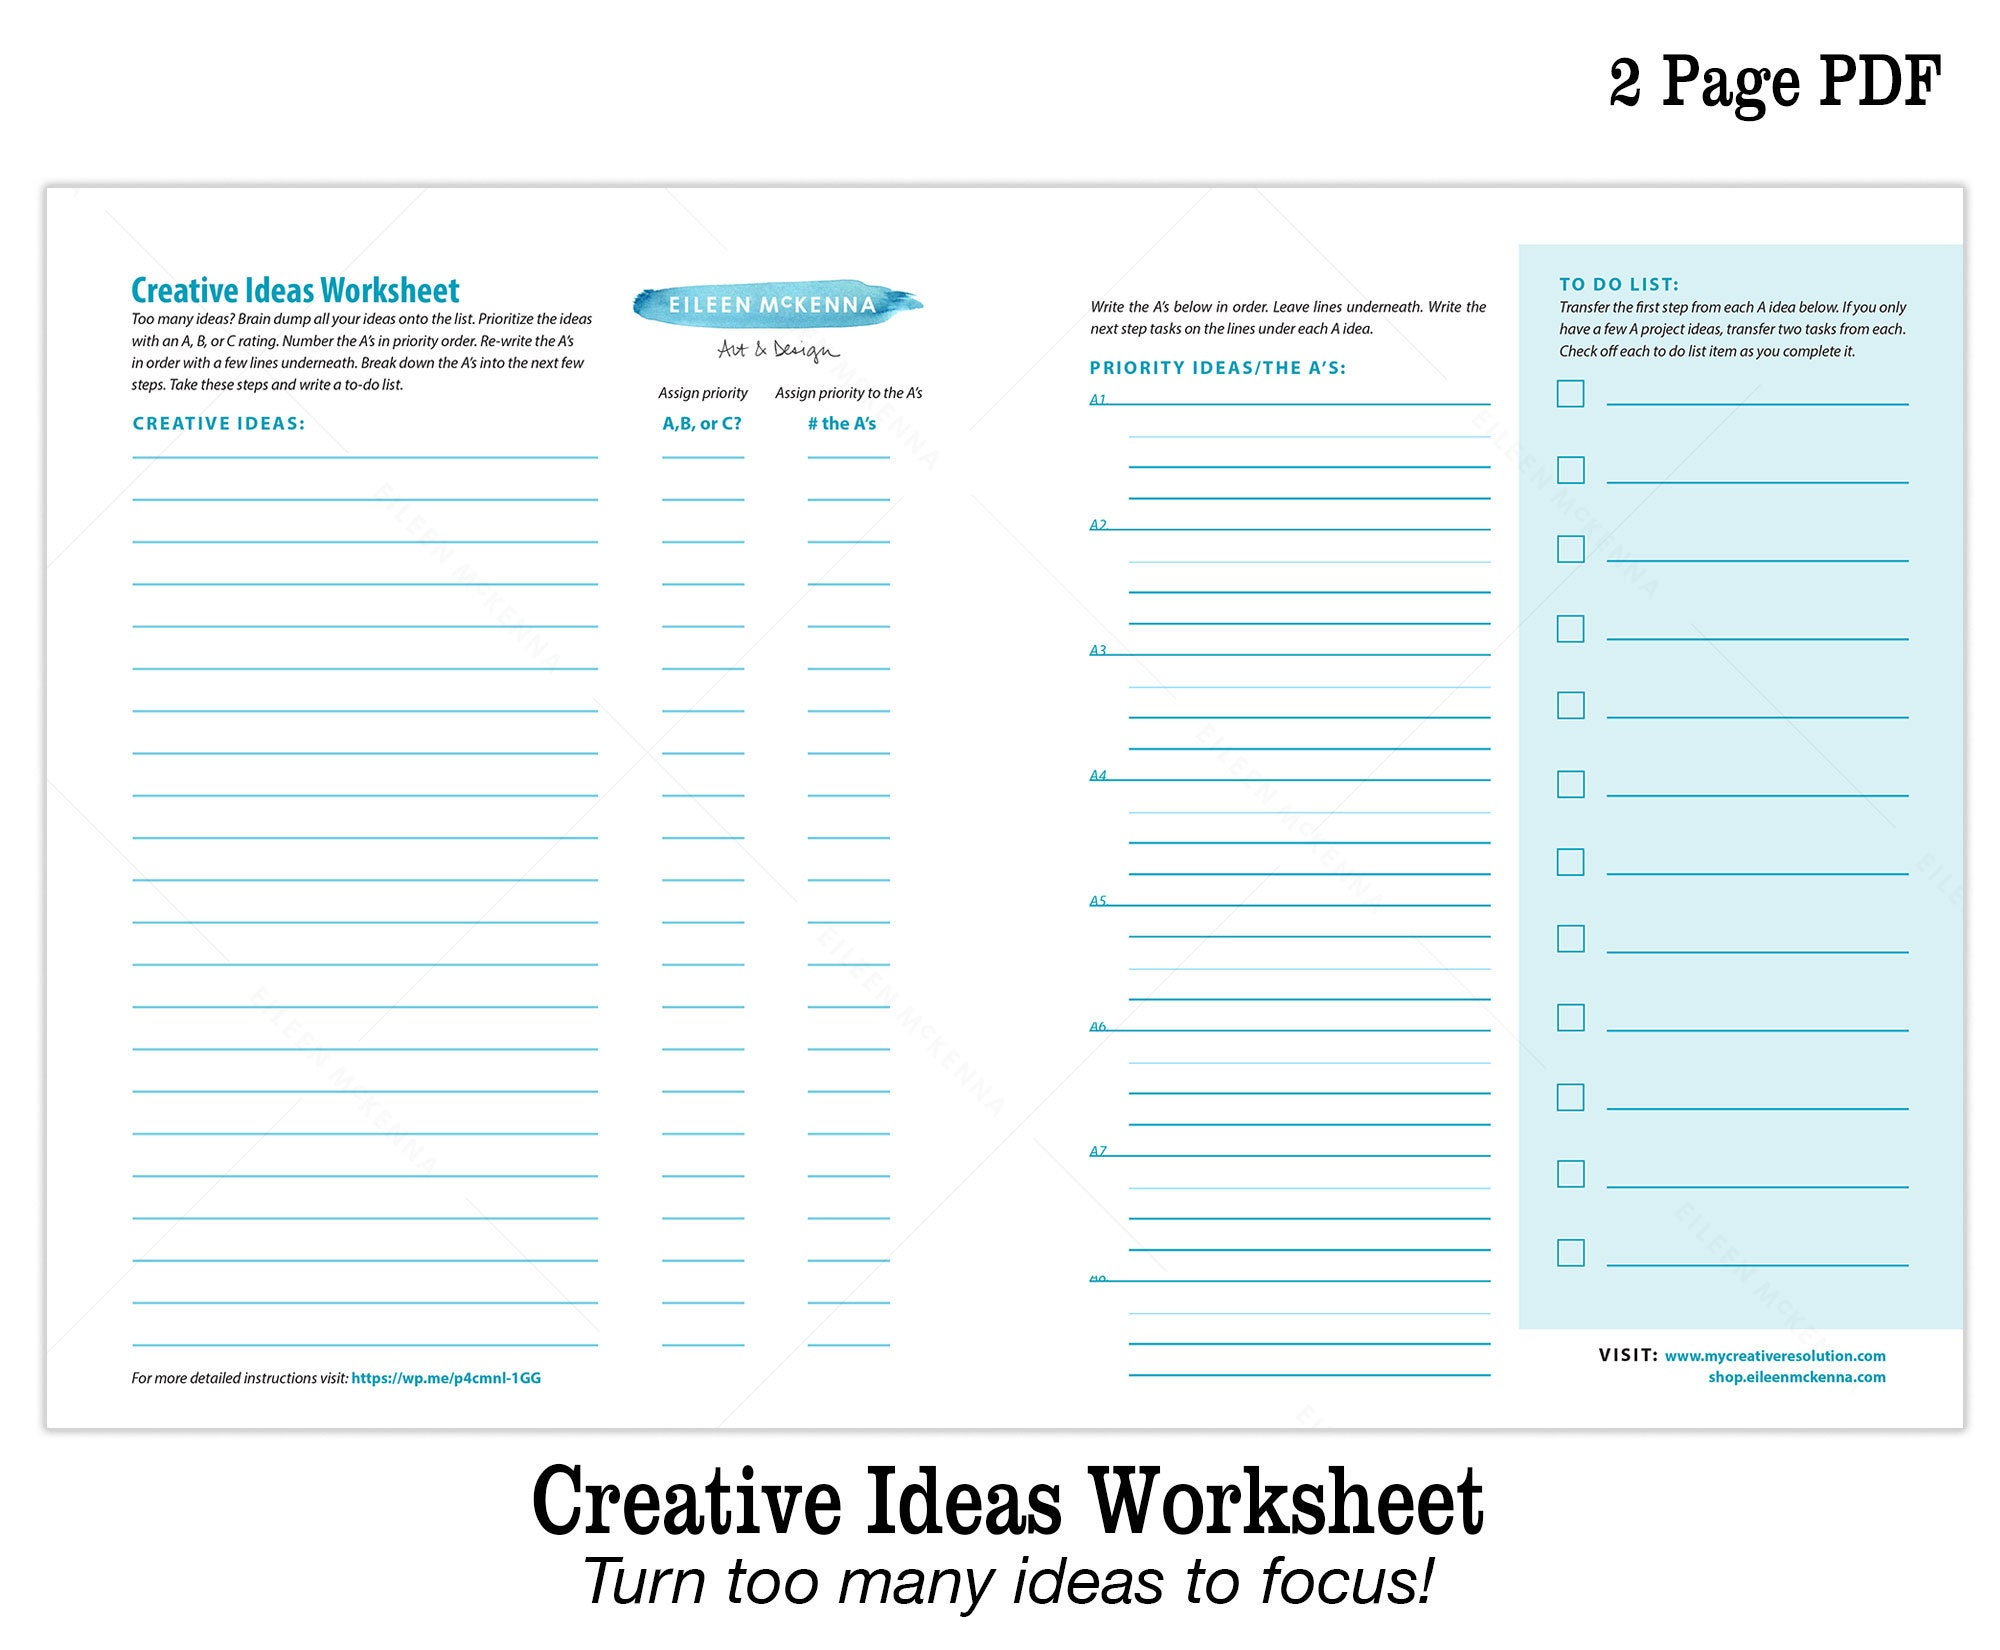 photo about Full Focus Planner Pdf known as Resourceful Suggestions Printable Worksheet How in direction of Notice with Way too Countless Suggestions Electronic Artistic Planner PDF Worksheet